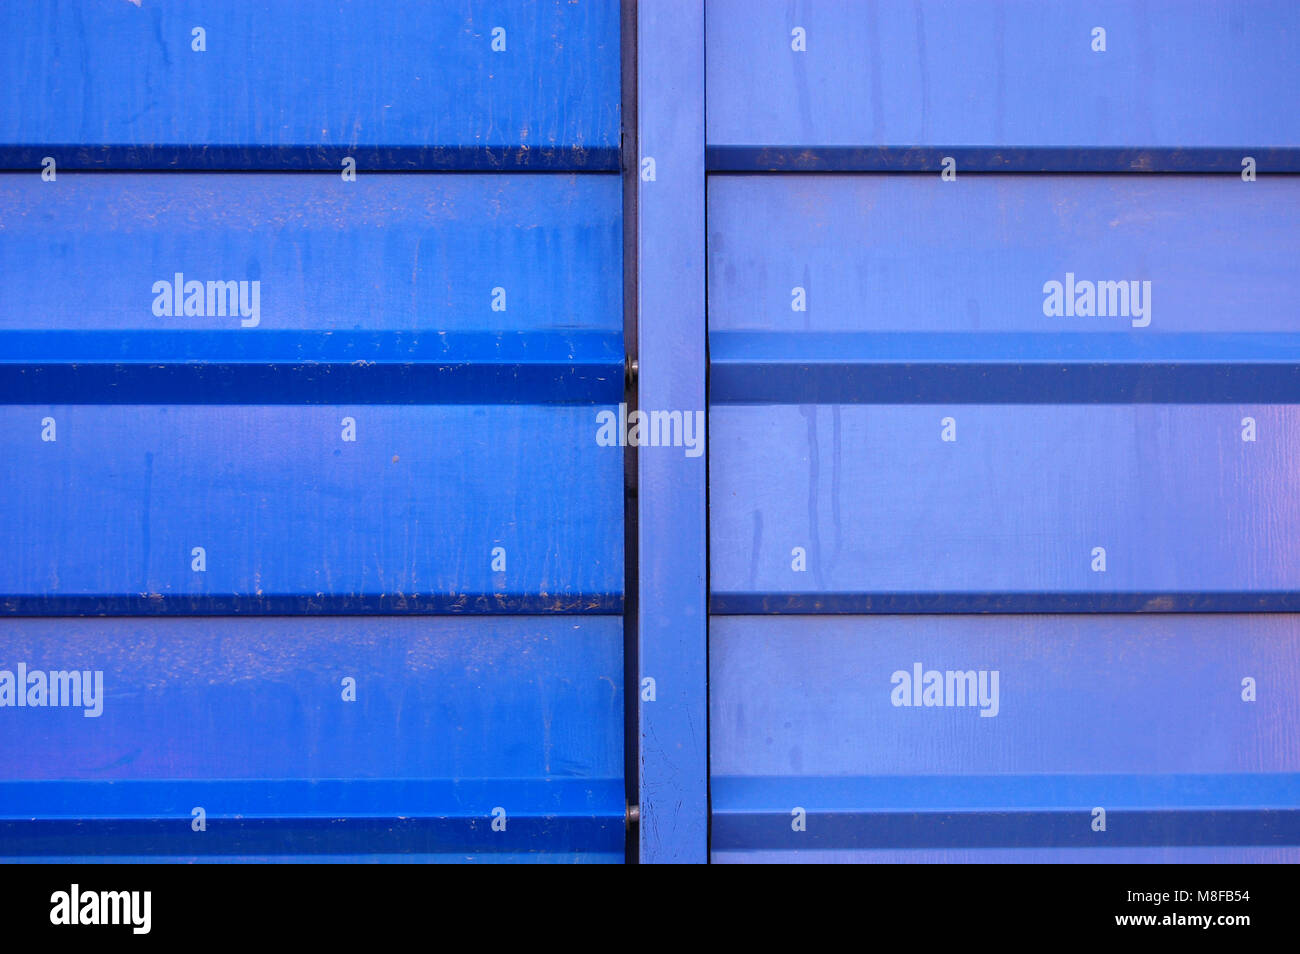 metallic wall of a building in two blue tones - Stock Image